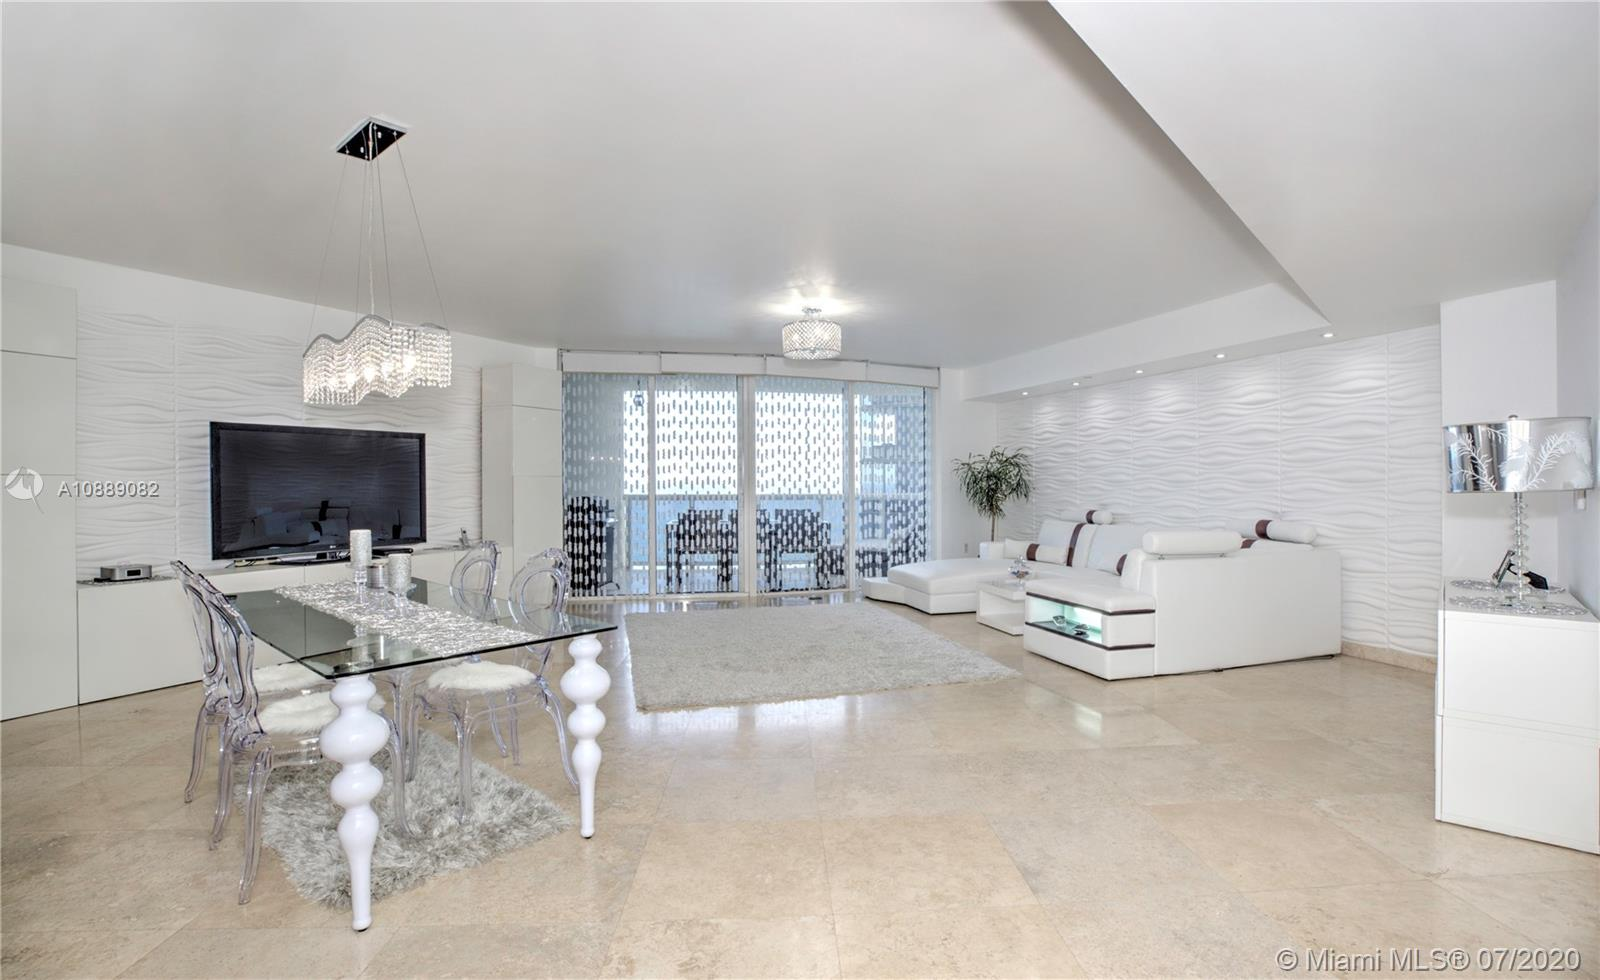 Beautiful 2bed 2.5 bath spacious unit overlooking the ocean and the intracoastal waters which you can enjoy from 2 large balconies. The building is located in the heart of Sunny Isles Beach and it is close to Bal Harbour Shops, Aventura Mall, Turnberry Golf Course, waterpark, restaurants, schools and more. You can also enjoy a lot of great amenities the building is offering such as the newly renovated pool, jacuzzi, beach service, gym, spa, on-site restaurant with room service, dog walk, mini golf, valet and more. The unit also comes with 1 assigned parking space. Owner is also willing to sell the furniture for $10,000. To see this property, please contact listing agent.